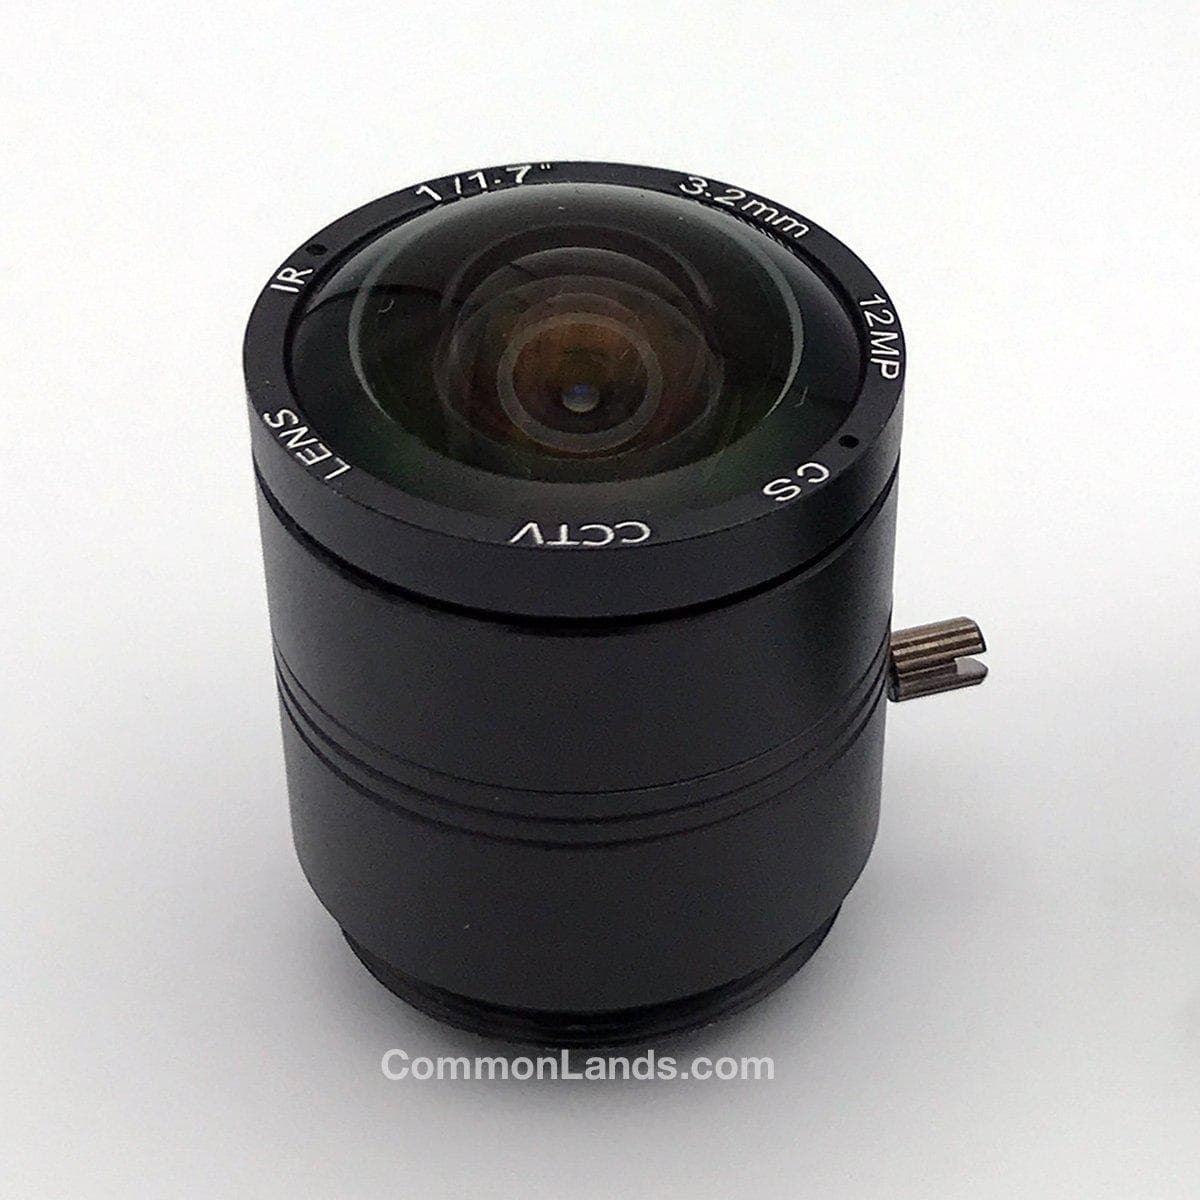 A 3.2mm CS Mount Lens for a Wide Lens Security Camera